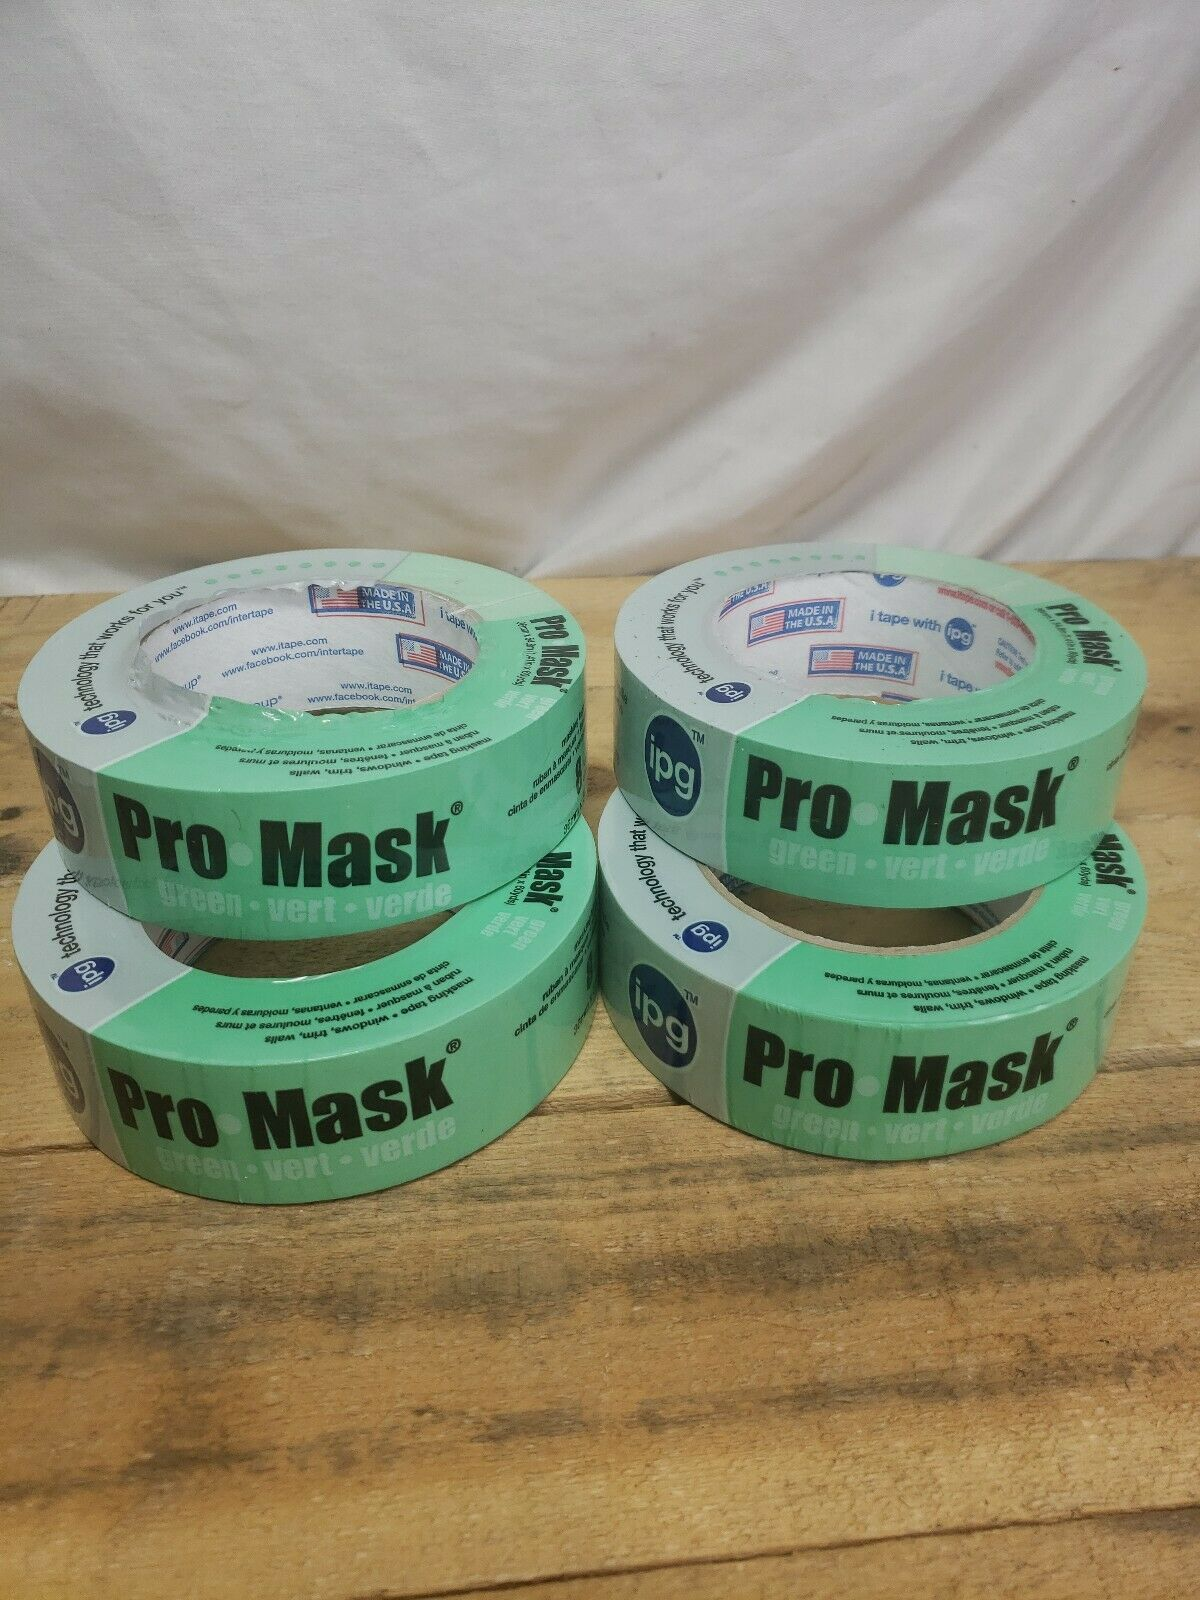 8-Day Painters Tape Single Roll 1.41 x 60 yd IPG ProMask Green Green,